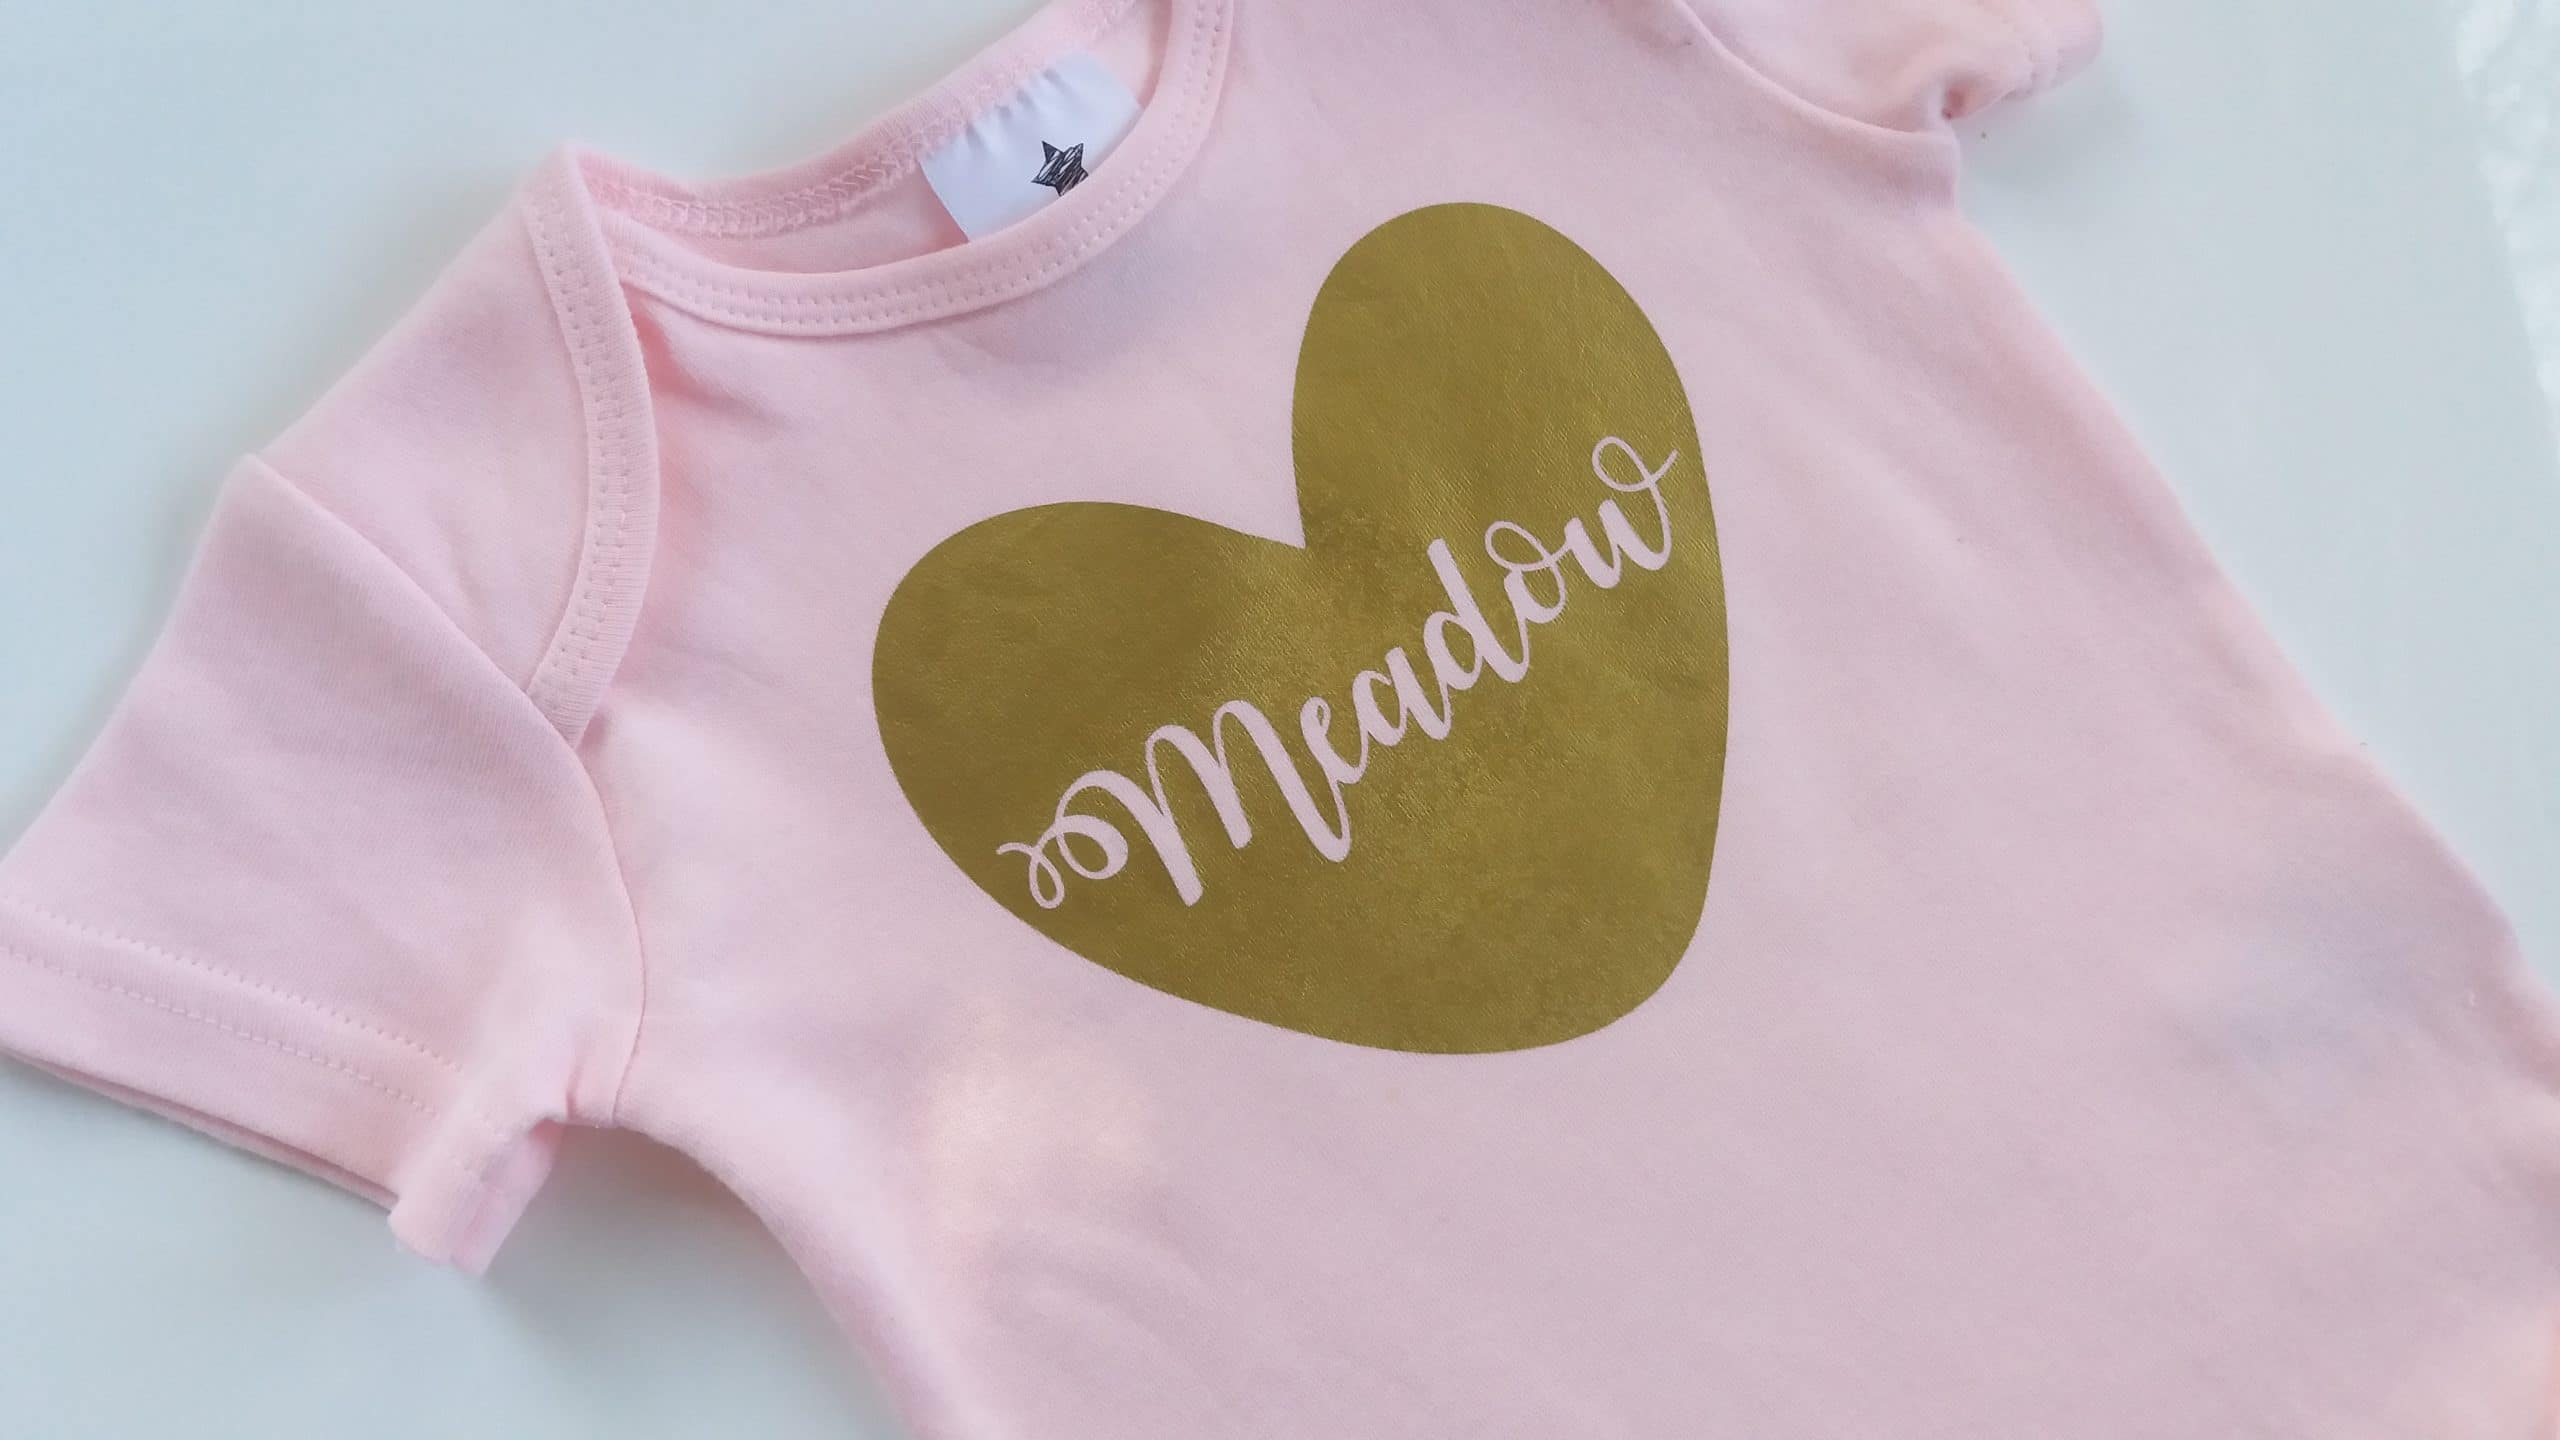 custom baby onesies t-shirt business